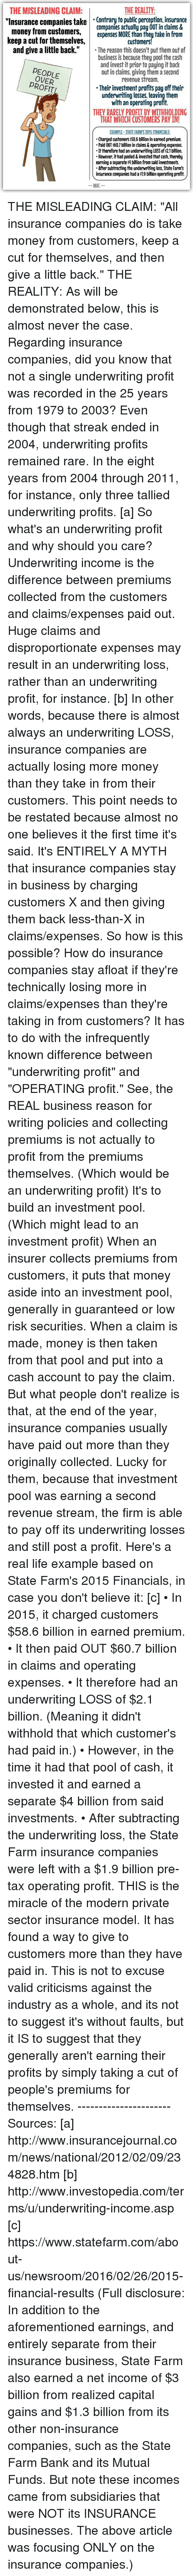 "Dank, Pool, and State Farm: THE REALITY  THE MISLEADING CLAIM:  ""Insurance companies take  Contrary to public perception, insurance  companies actually pay OUT in claims &  money from customers,  expenses MORE than they take in from  keep a cut for themselves,  customers!  and give a little back  The reason this doesn't put them out of  business is because they pool the cash  and invest it prior to paying it back  out in claims, giving them a second  OVER  revenue stream.  Their investment profits pay offtheir  underwriting losses, leaving them  with an operating profit.  THAT WHICH CUSTOMERS PAY IN!  XAMPLE-STATE FARMS 2015 FINANCIALS:  Charged customers $58.6 billion in earned premium.  Paid OUT $60.7 billion in claims&operating expenses.  It therefore had an underwriting LOSS of 21 billion.  However, it had pooled& invested that cash, thereby  earning a separate $4 billion from said investments.  After subtracting the underwriting loss. State Farm's  insurance companies had a $19 billion operating profit.  WAC THE MISLEADING CLAIM: ""All insurance companies do is take money from customers, keep a cut for themselves, and then give a little back.""  THE REALITY: As will be demonstrated below, this is almost never the case.   Regarding insurance companies, did you know that not a single underwriting profit was recorded in the 25 years from 1979 to 2003? Even though that streak ended in 2004, underwriting profits remained rare. In the eight years from 2004 through 2011, for instance, only three tallied underwriting profits. [a]  So what's an underwriting profit and why should you care?  Underwriting income is the difference between premiums collected from the customers and claims/expenses paid out. Huge claims and disproportionate expenses may result in an underwriting loss, rather than an underwriting profit, for instance. [b] In other words, because there is almost always an underwriting LOSS, insurance companies are actually losing more money than they take in from their customers. This point needs to be restated because almost no one believes it the first time it's said. It's ENTIRELY A MYTH that insurance companies stay in business by charging customers X and then giving them back less-than-X in claims/expenses.  So how is this possible? How do insurance companies stay afloat if they're technically losing more in claims/expenses than they're taking in from customers?    It has to do with the infrequently known difference between ""underwriting profit"" and ""OPERATING profit.""  See, the REAL business reason for writing policies and collecting premiums is not actually to profit from the premiums themselves. (Which would be an underwriting profit) It's to build an investment pool. (Which might lead to an investment profit)   When an insurer collects premiums from customers, it puts that money aside into an investment pool, generally in guaranteed or low risk securities. When a claim is made, money is then taken from that pool and put into a cash account to pay the claim. But what people don't realize is that, at the end of the year, insurance companies usually have paid out more than they originally collected. Lucky for them, because that investment pool was earning a second revenue stream, the firm is able to pay off its underwriting losses and still post a profit.   Here's a real life example based on State Farm's 2015 Financials, in case you don't believe it: [c]  • In 2015, it charged customers $58.6 billion in earned premium.  • It then paid OUT $60.7 billion in claims and operating expenses. • It therefore had an underwriting LOSS of $2.1 billion. (Meaning it didn't withhold that which customer's had paid in.) • However, in the time it had that pool of cash, it invested it and earned a separate $4 billion from said investments.   • After subtracting the underwriting loss, the State Farm insurance companies were left with a $1.9 billion pre-tax operating profit.   THIS is the miracle of the modern private sector insurance model. It has found a way to give to customers more than they have paid in. This is not to excuse valid criticisms against the industry as a whole, and its not to suggest it's without faults, but it IS to suggest that they generally aren't earning their profits by simply taking a cut of people's premiums for themselves. ---------------------- Sources: [a] http://www.insurancejournal.com/news/national/2012/02/09/234828.htm  [b] http://www.investopedia.com/terms/u/underwriting-income.asp  [c] https://www.statefarm.com/about-us/newsroom/2016/02/26/2015-financial-results (Full disclosure: In addition to the aforementioned earnings, and entirely separate from their insurance business, State Farm also earned a net income of $3 billion from realized capital gains and $1.3 billion from its other non-insurance companies, such as the State Farm Bank and its Mutual Funds. But note these incomes came from subsidiaries that were NOT its INSURANCE businesses. The above article was focusing ONLY on the insurance companies.)"